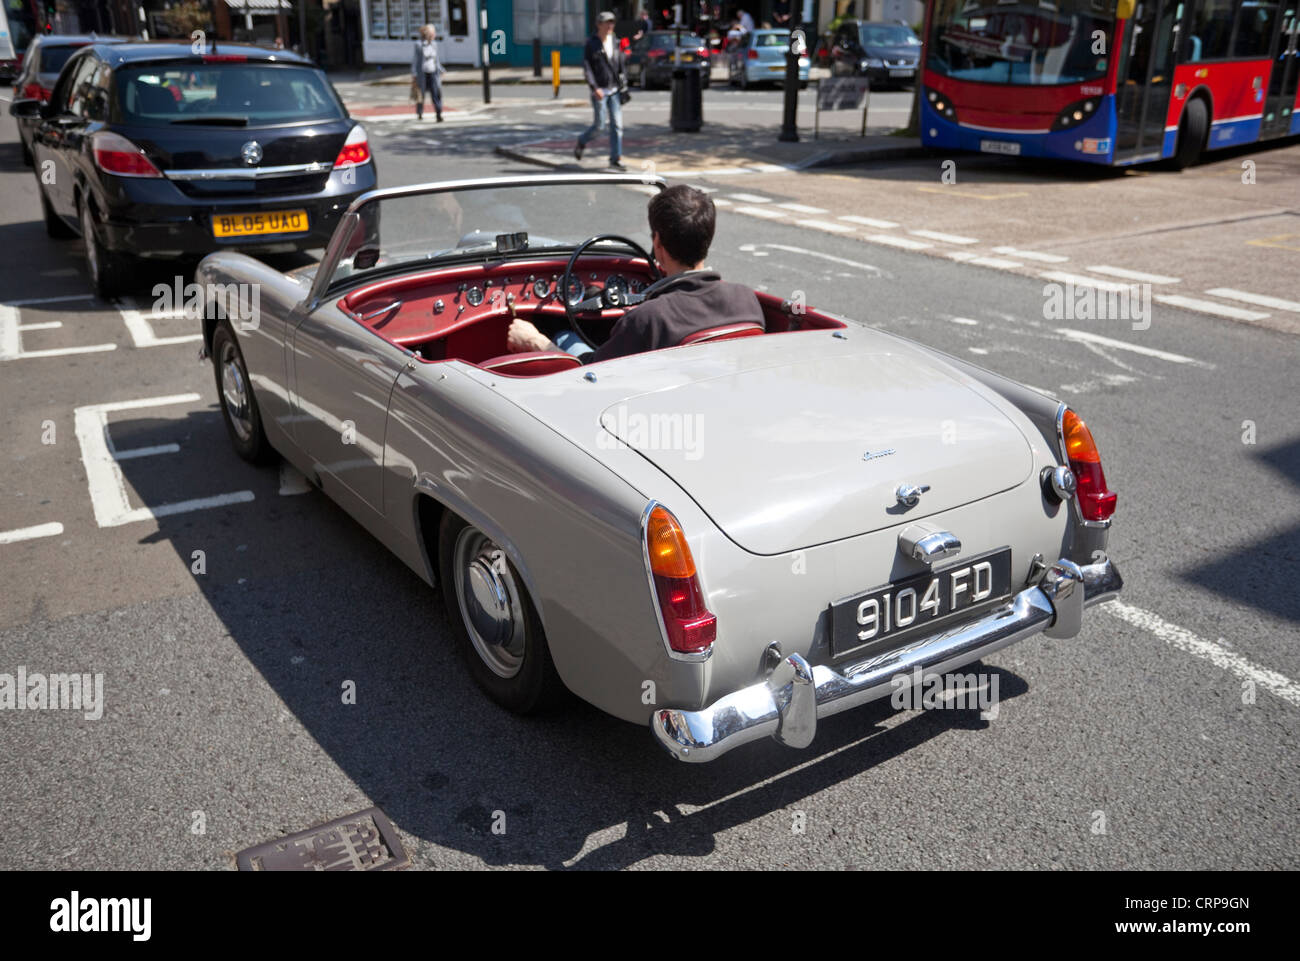 Rear view of an Austin Healey Sprite car, London, England, UK - Stock Image